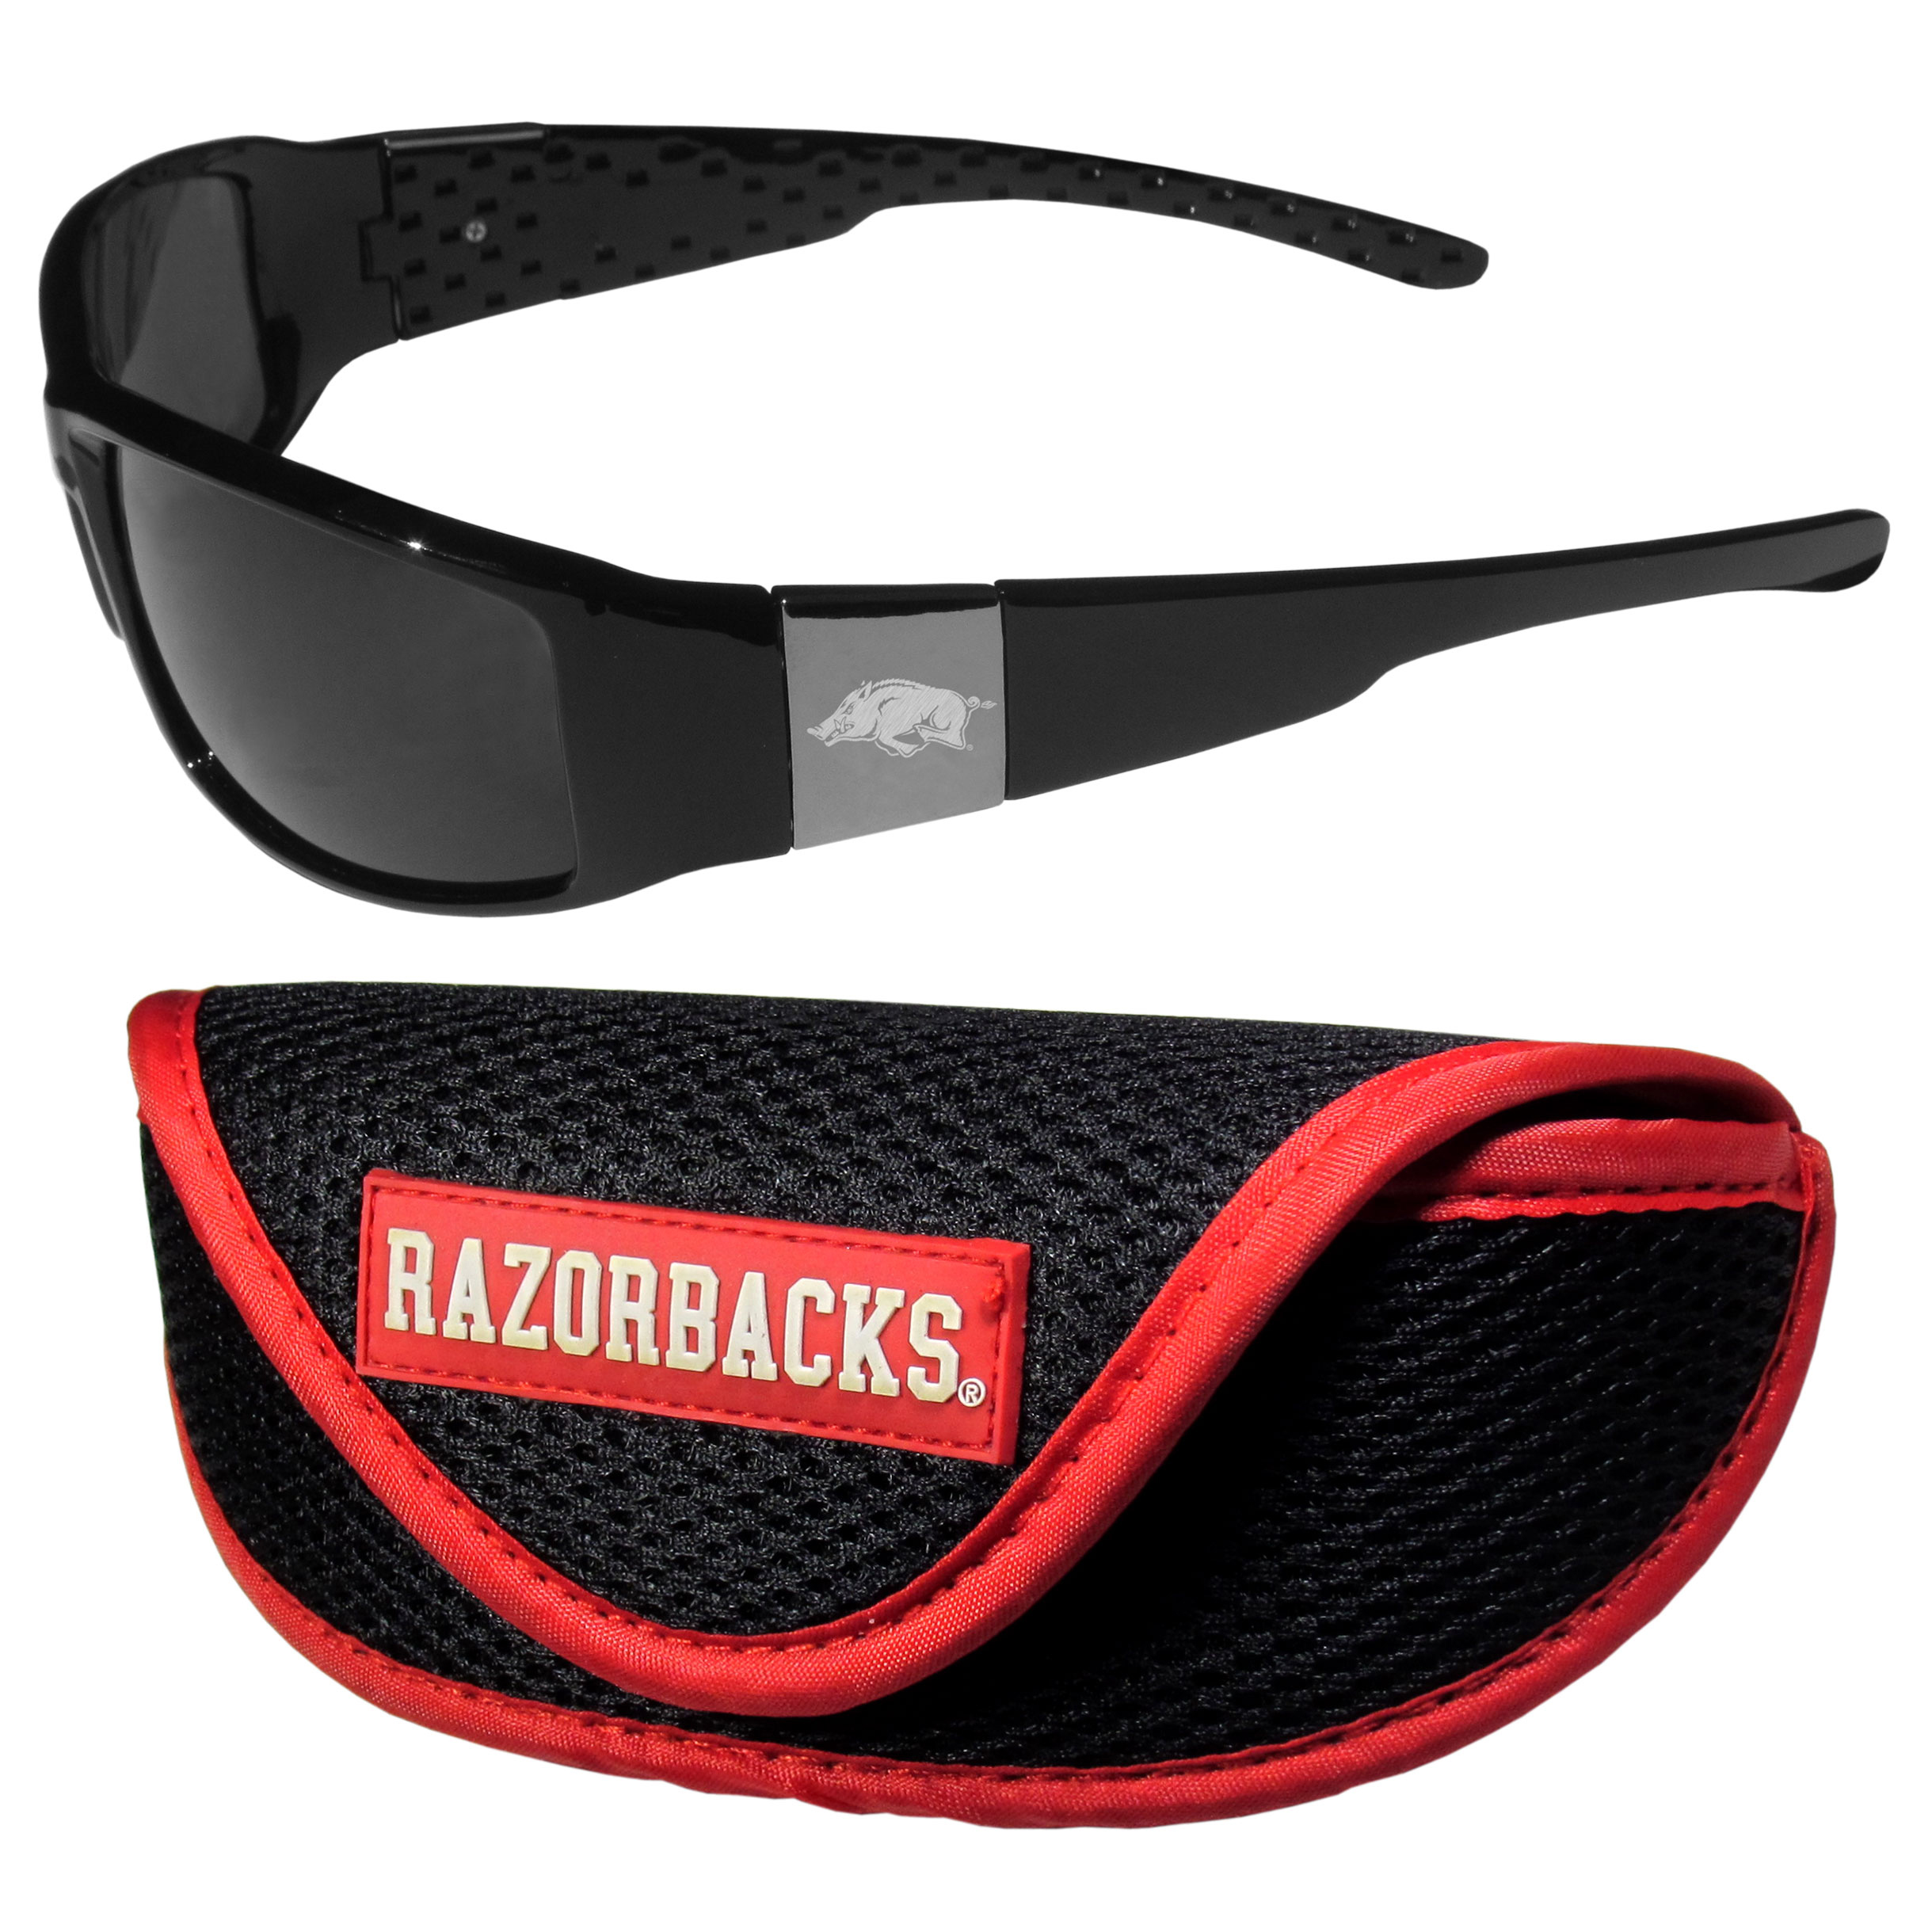 Arkansas Razorbacks Chrome Wrap Sunglasses and Sport Carrying Case - These designer inspired frames have a sleek look in all black with high-polish chrome Arkansas Razorbacks shields on each arm with an etched logo. The shades are perfect any outdoor activity like; golfing, driving, hiking, fishing or cheering on the team at a tailgating event or an at home game day BBQ with a lens rating of 100% UVA/UVB for maximum UV protection. The high-quality frames are as durable as they are fashionable and with their classic look they are perfect fan accessory that can be worn everyday for every occasion. The shades come with a zippered hard shell case to keep your sunglasses safe.